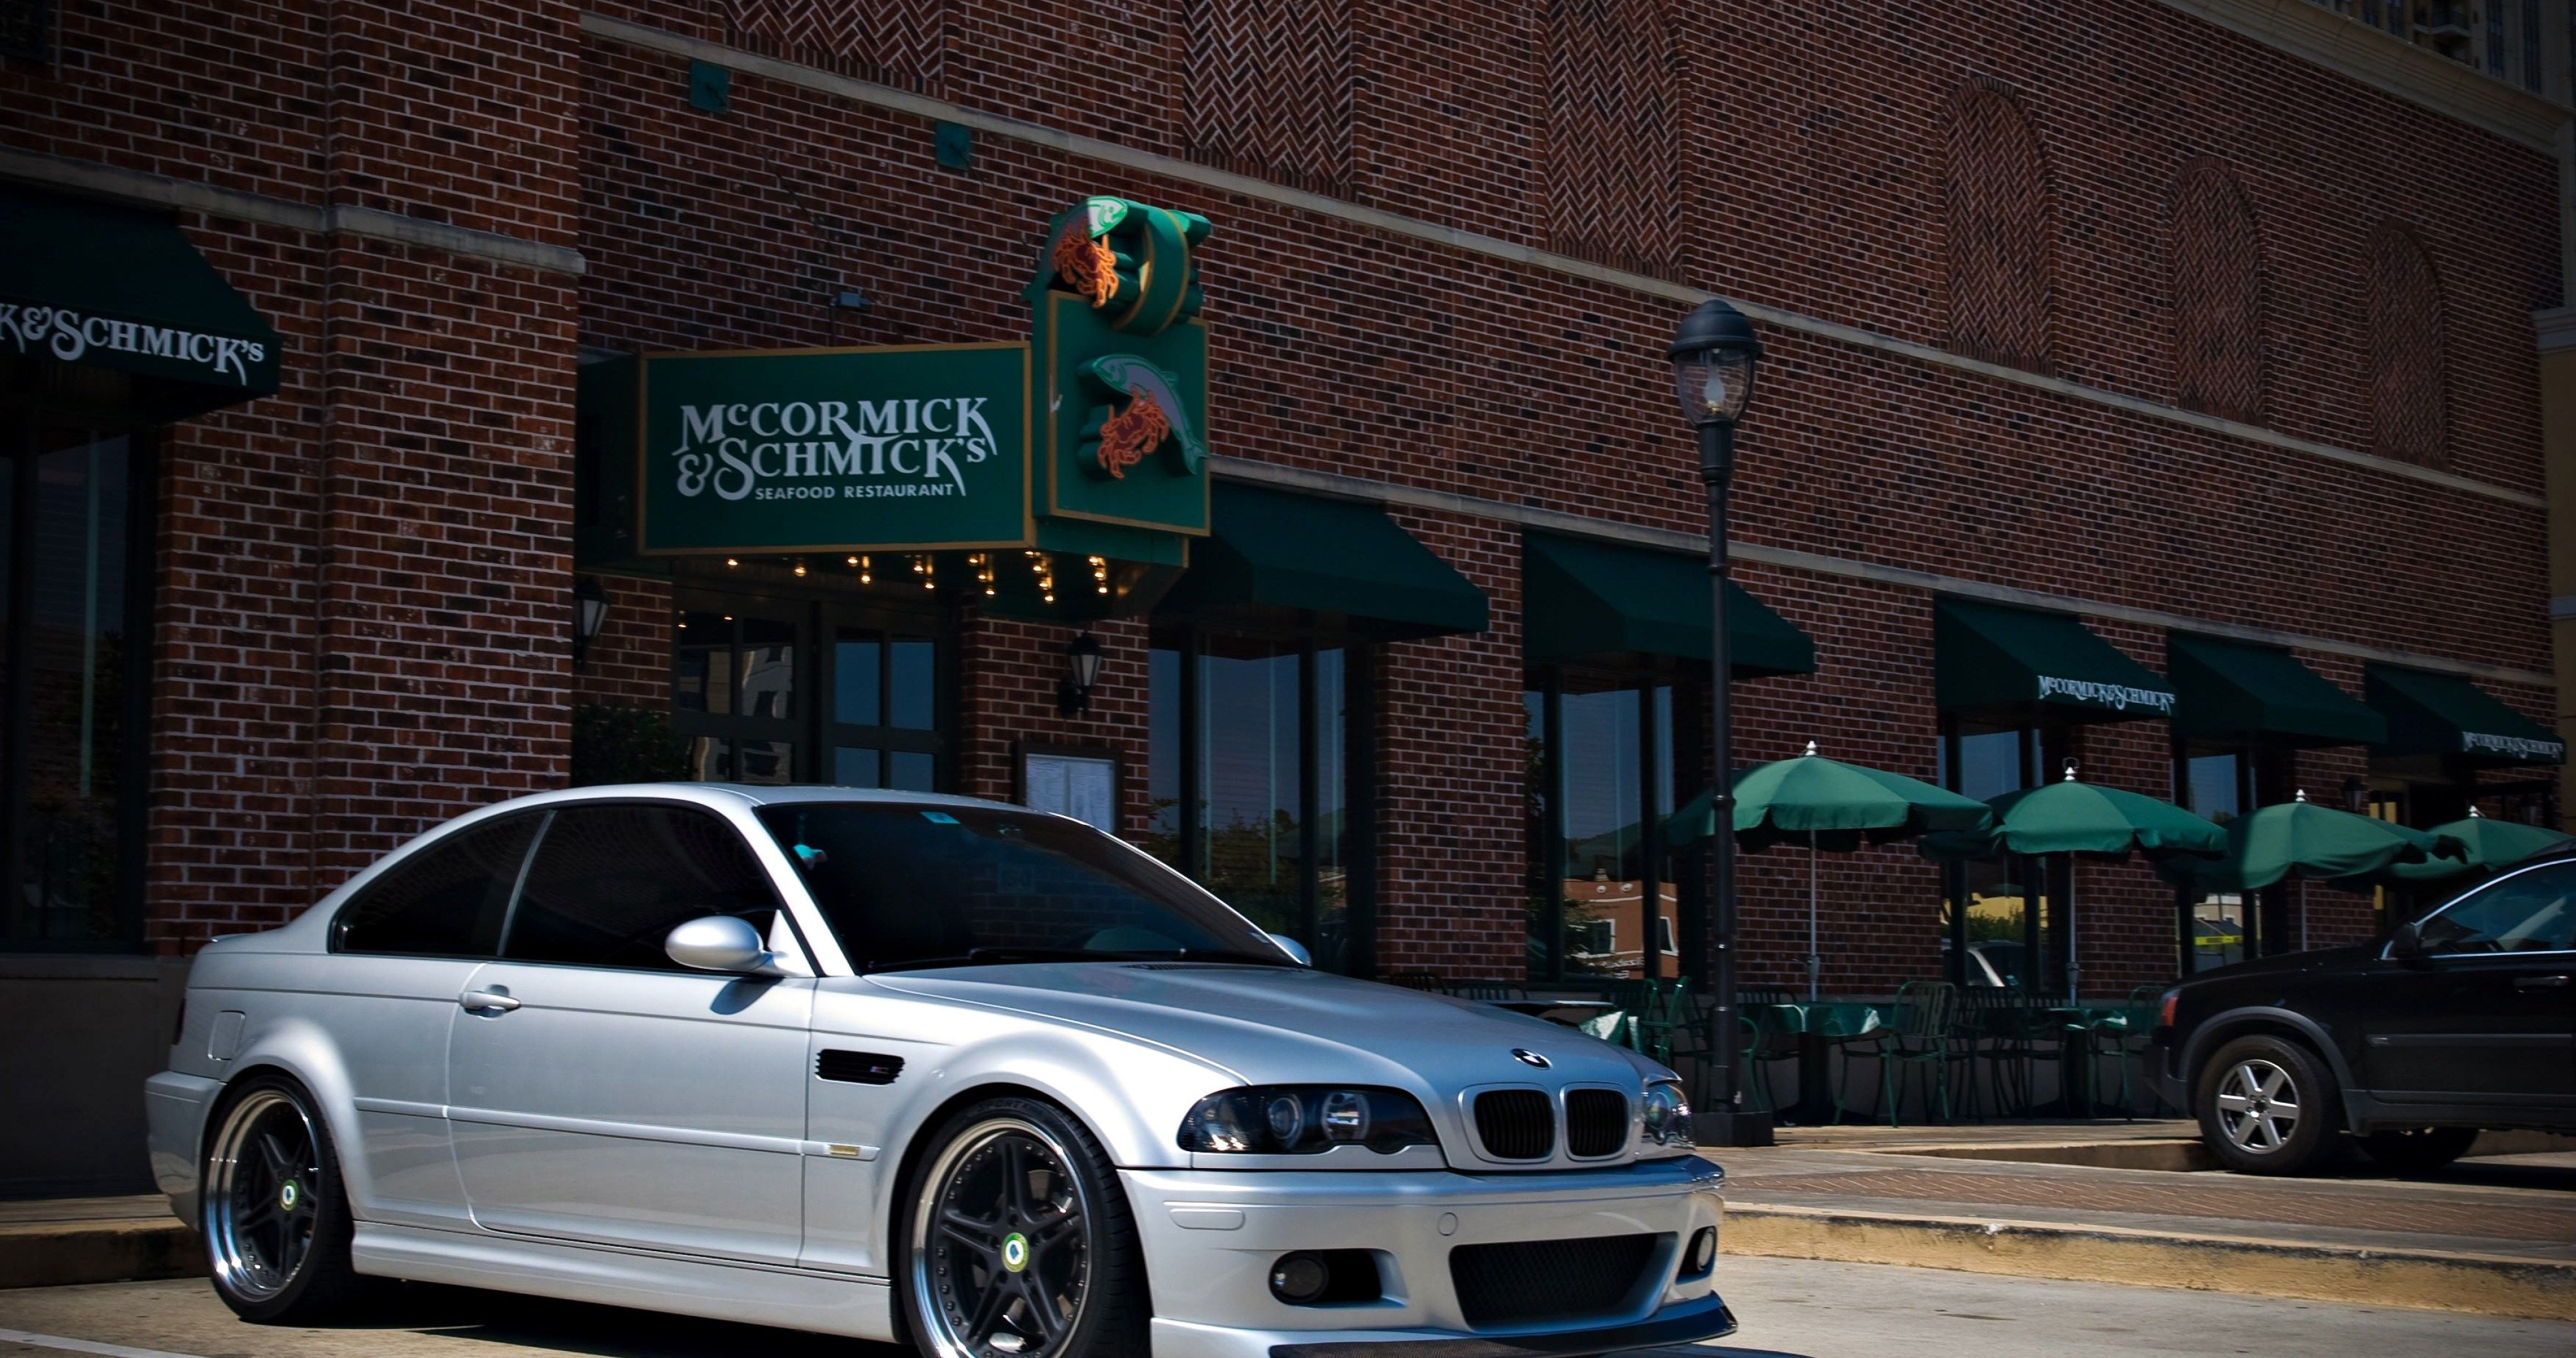 Bmw M3 E46 Silver Wallpaper 4k Ultra Hd Wallpaper With Images